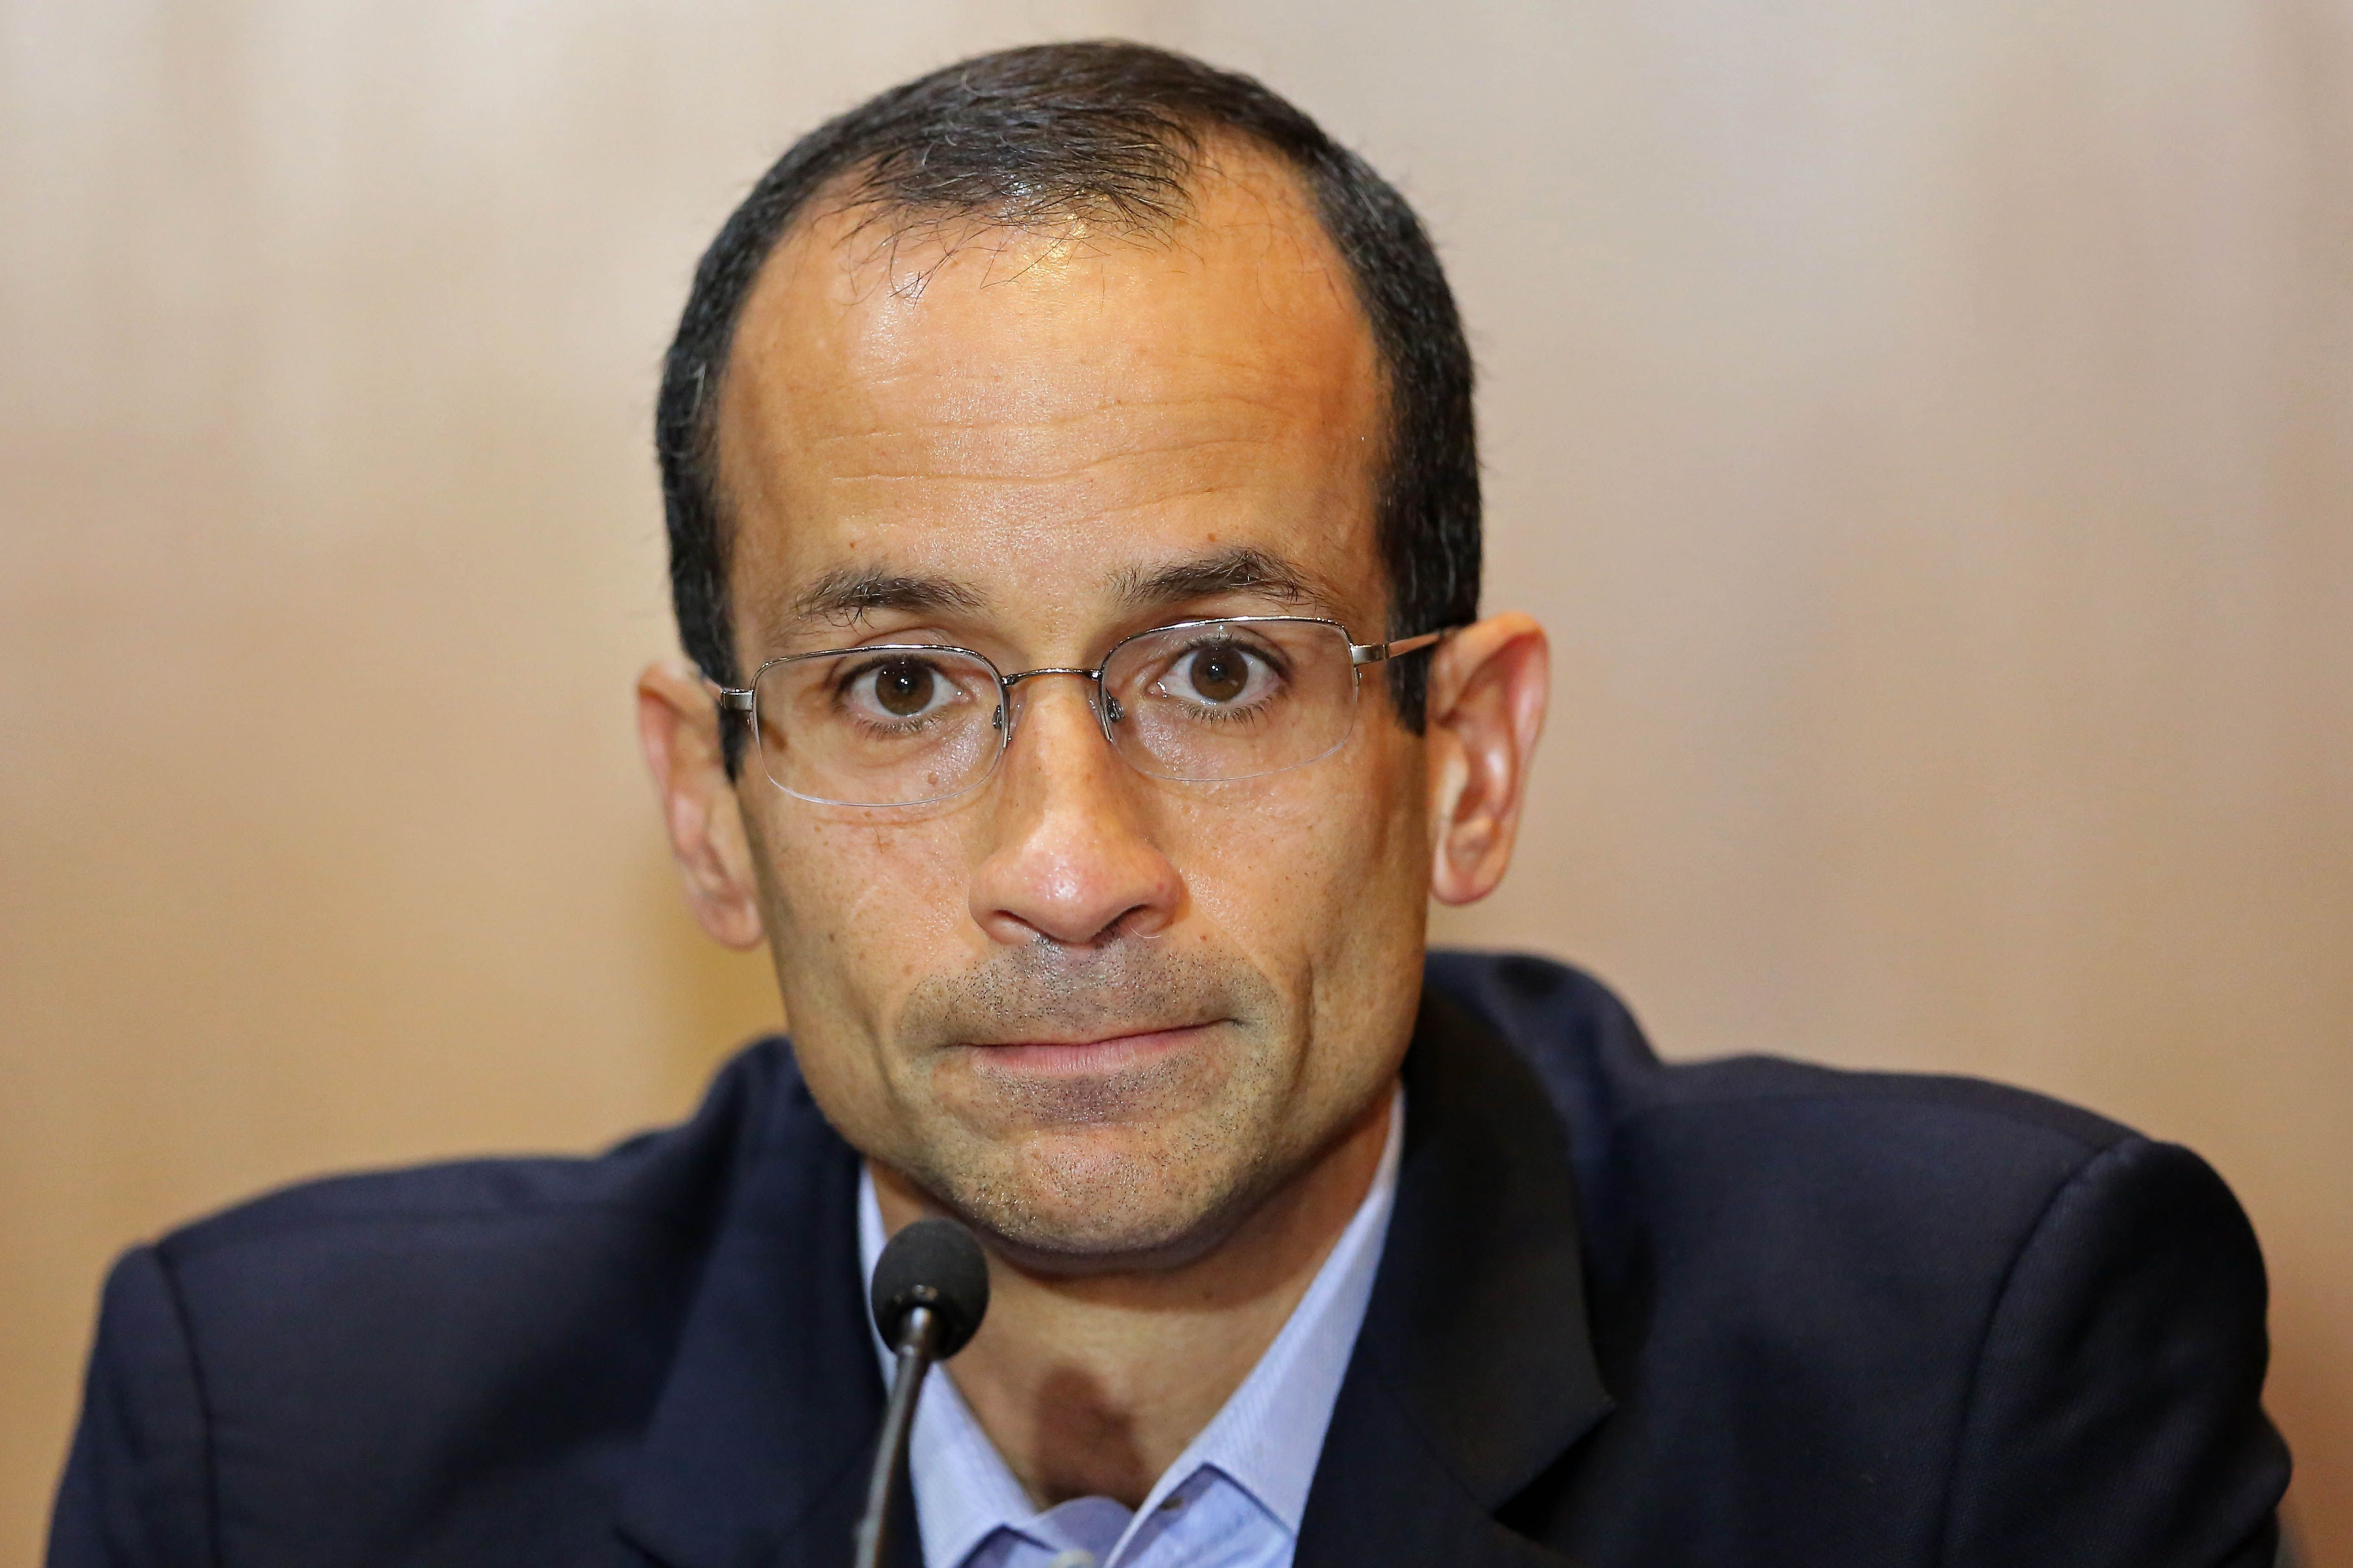 Brazil's Marcelo Odebrecht gets 19 years in jail in Carwash